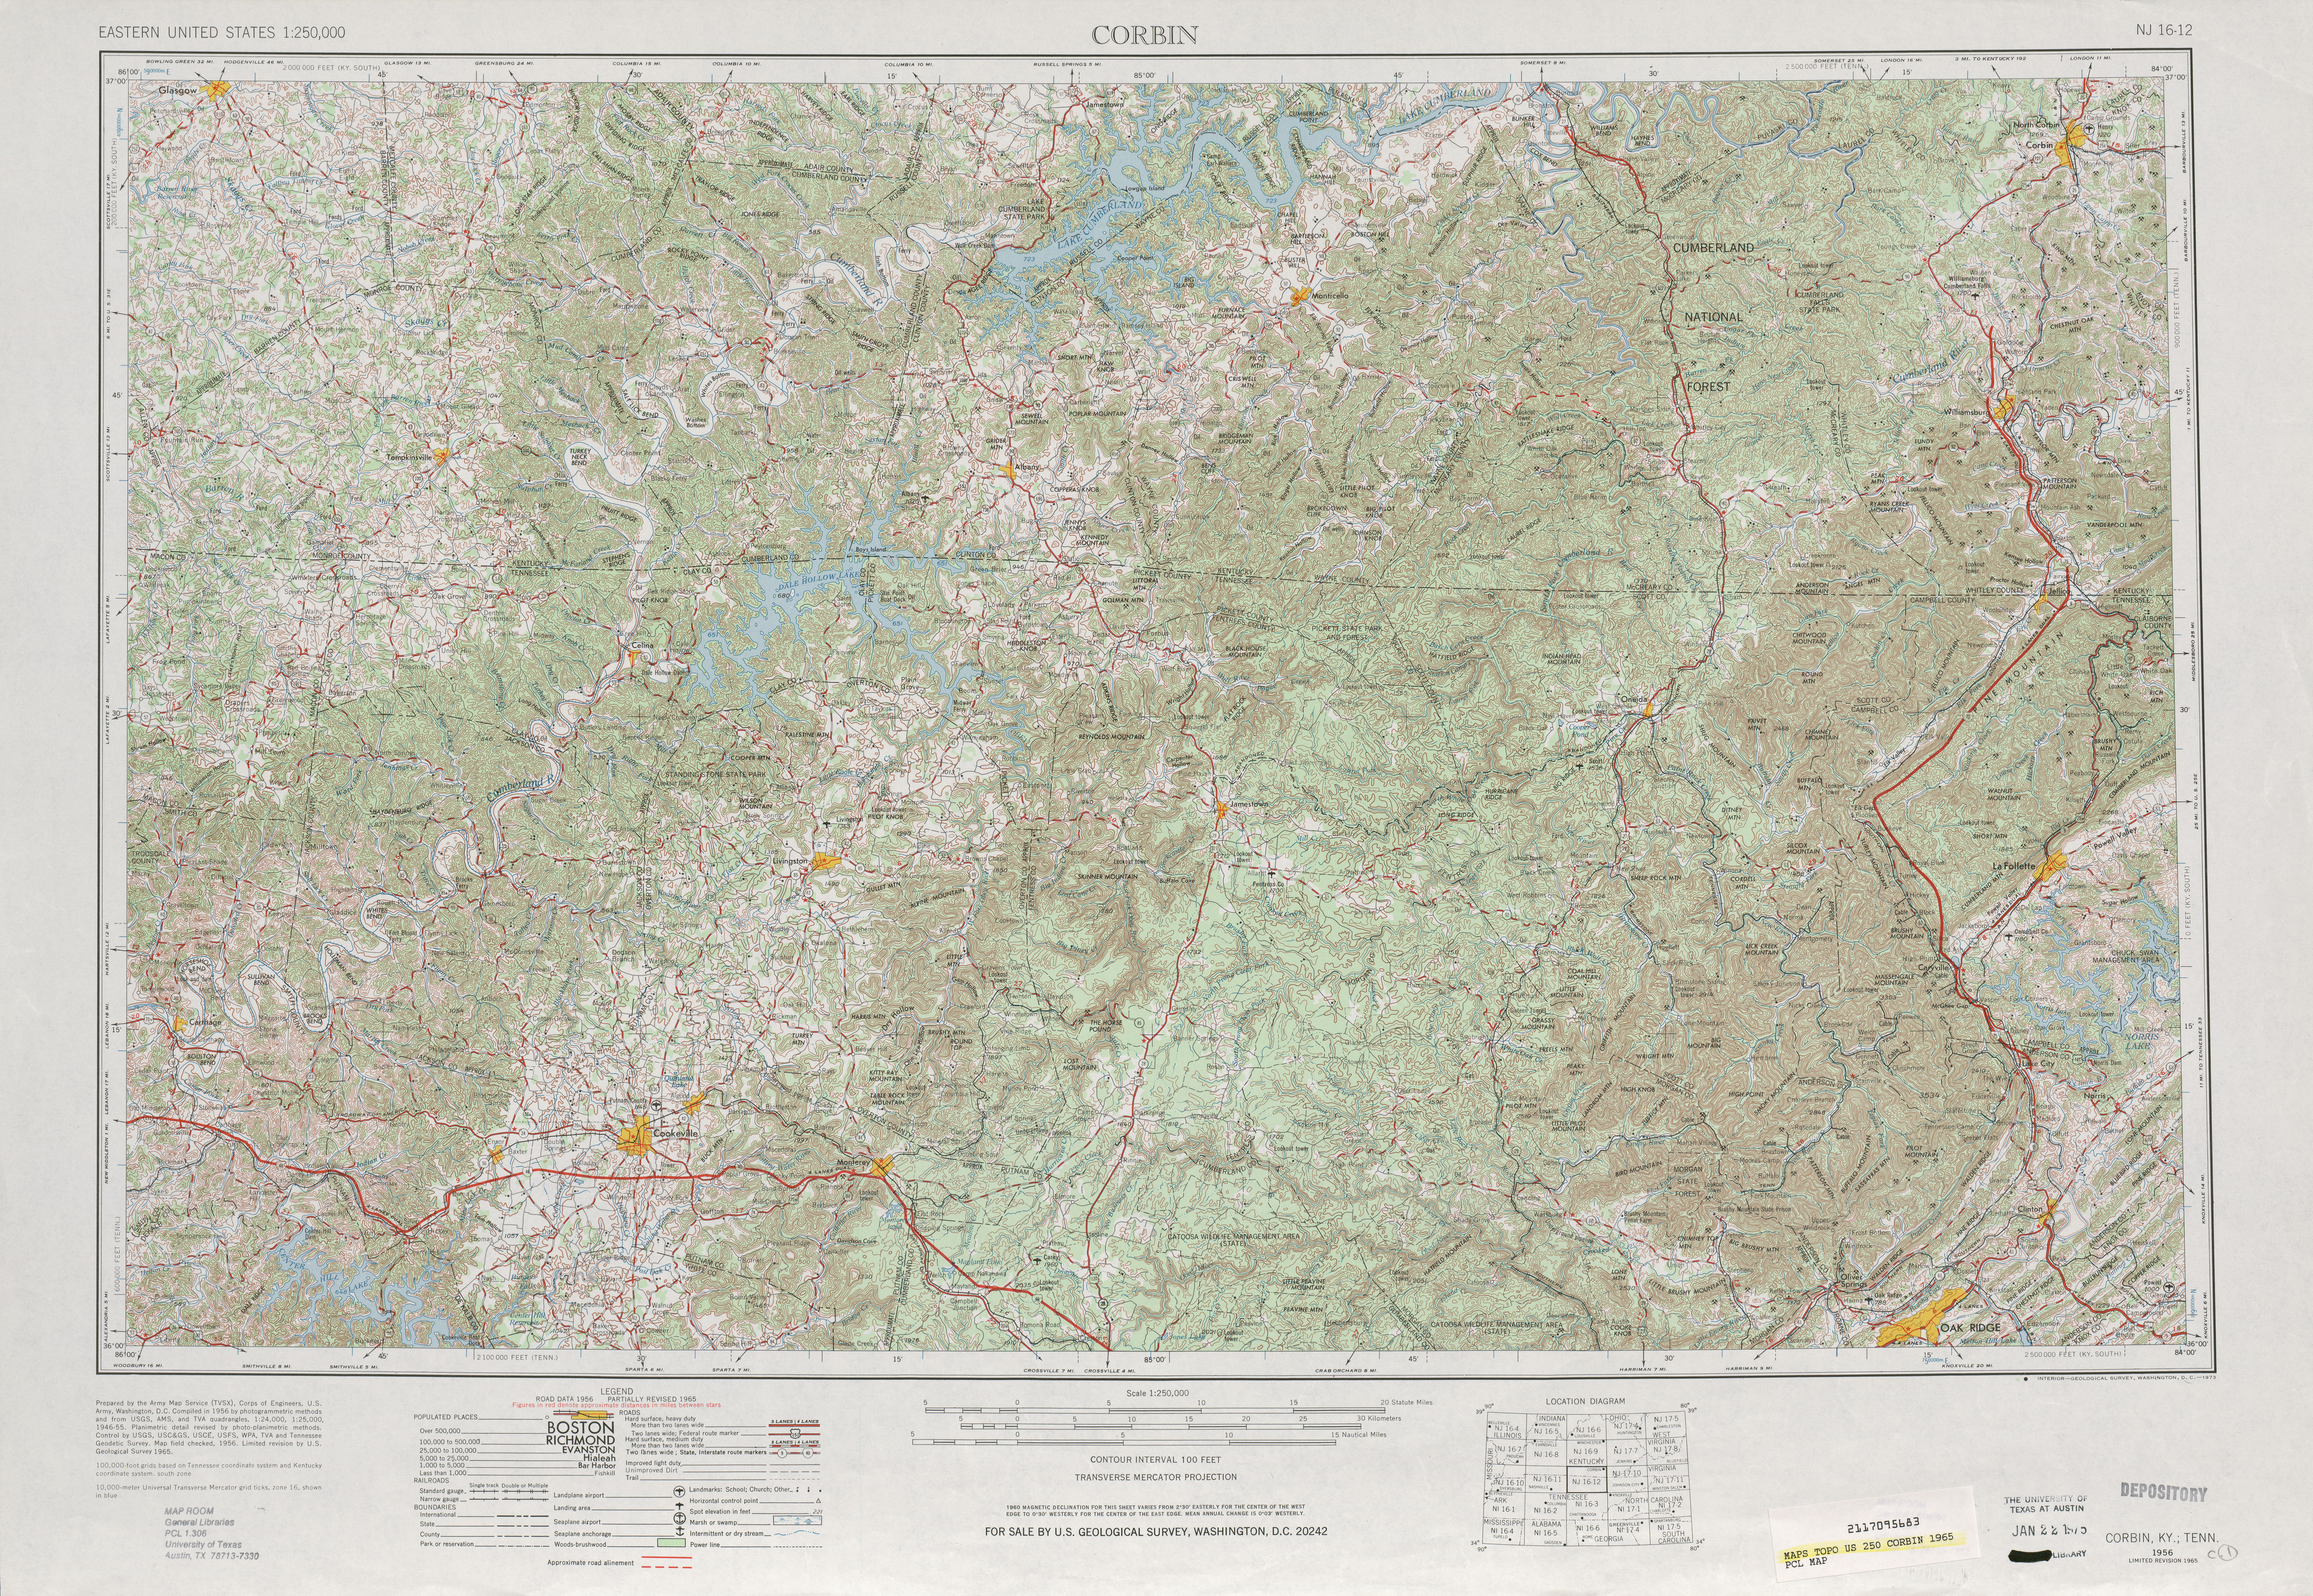 Corbin Topographic Map Sheet, United States 1965